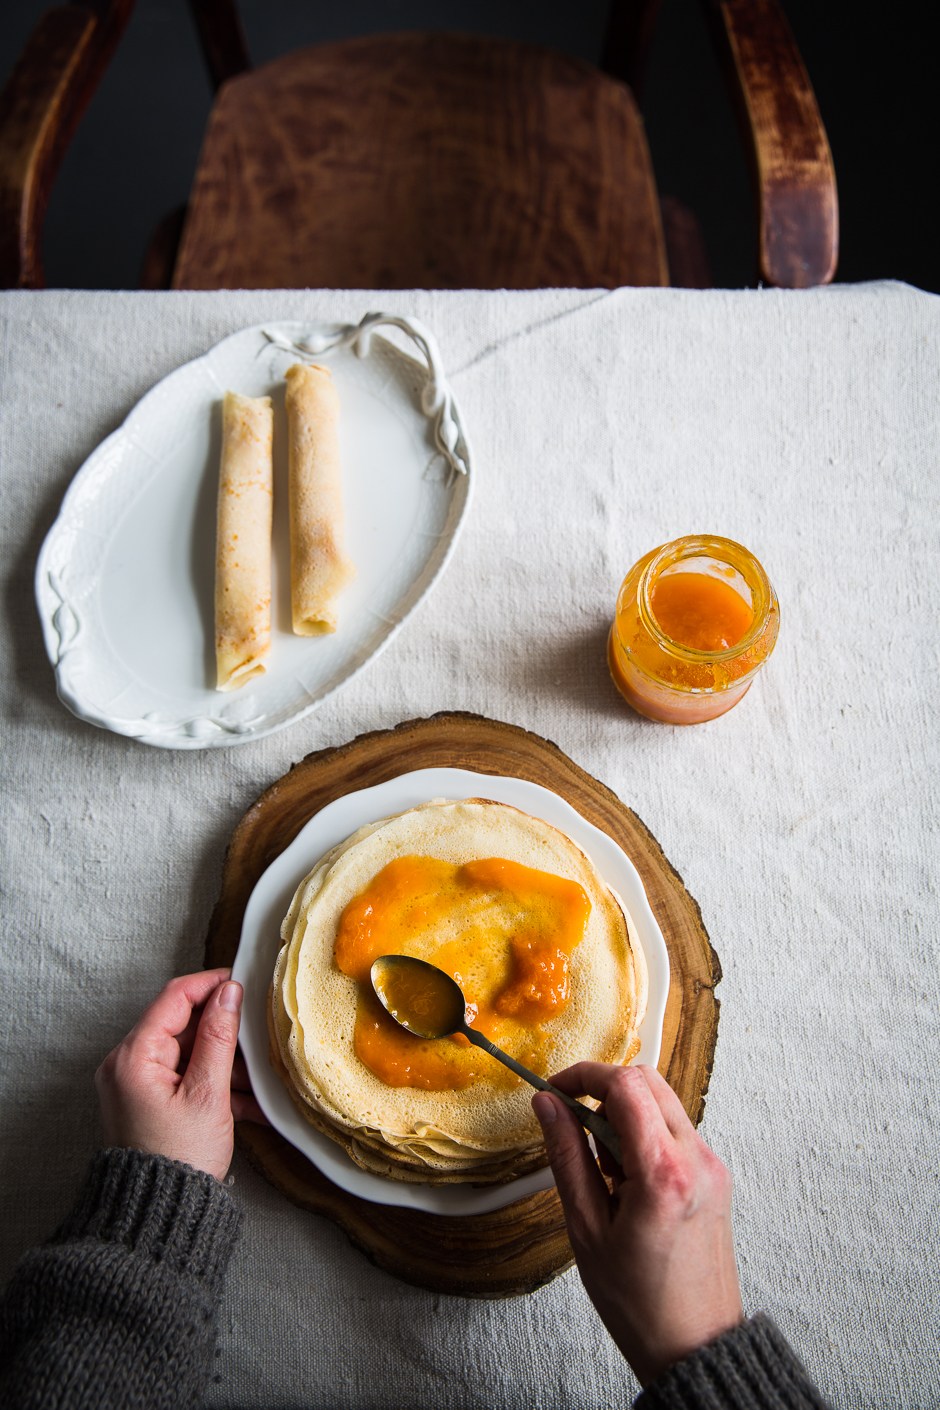 my grandmother's Hungarian crêpes from the Taste of Memories country kitchen www.tasteofmemories.com